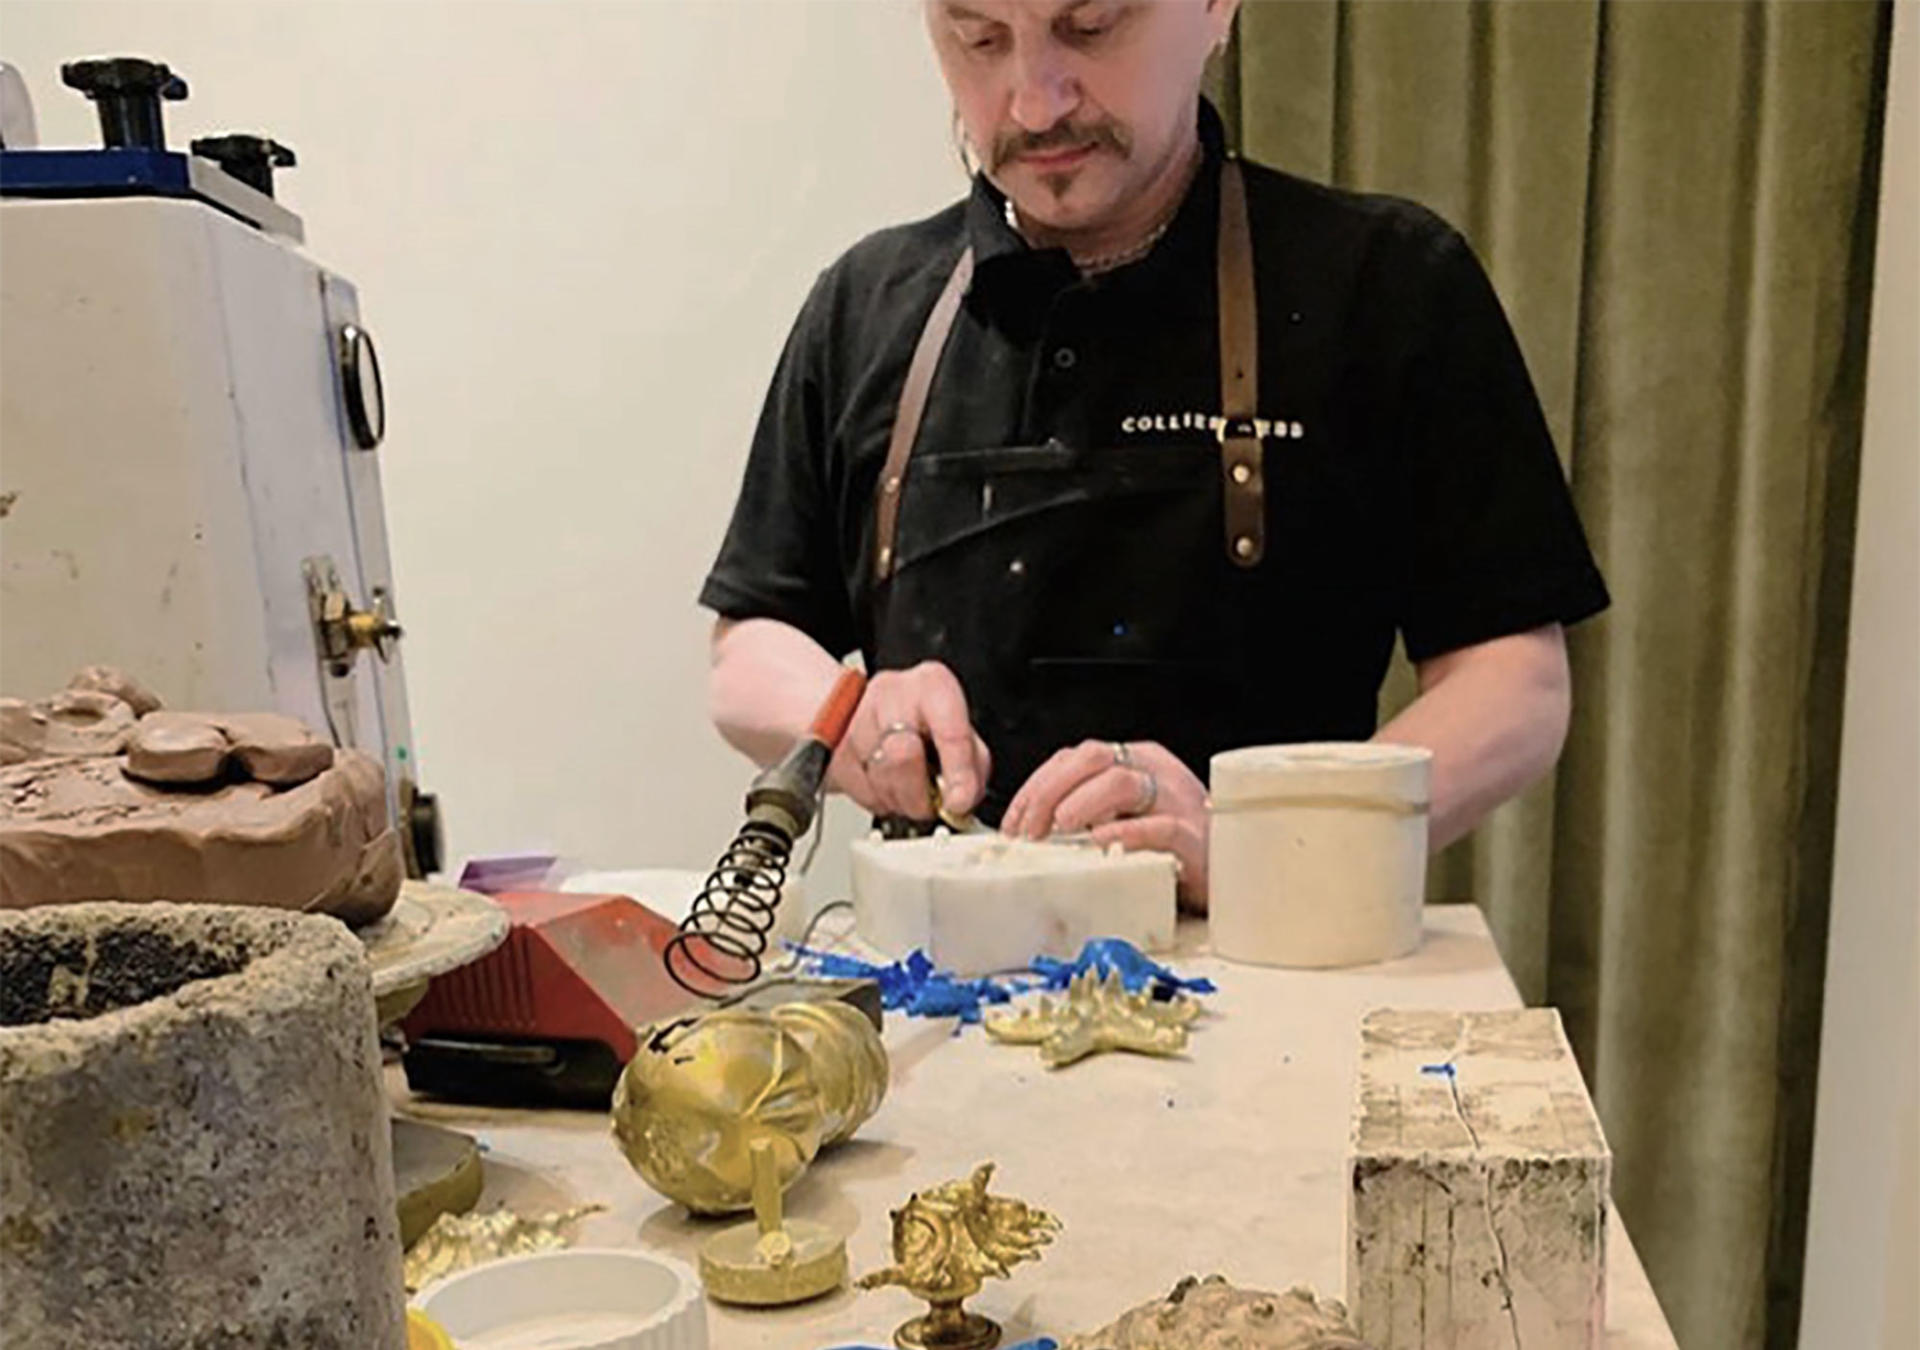 Collier Webb for London Craft Week